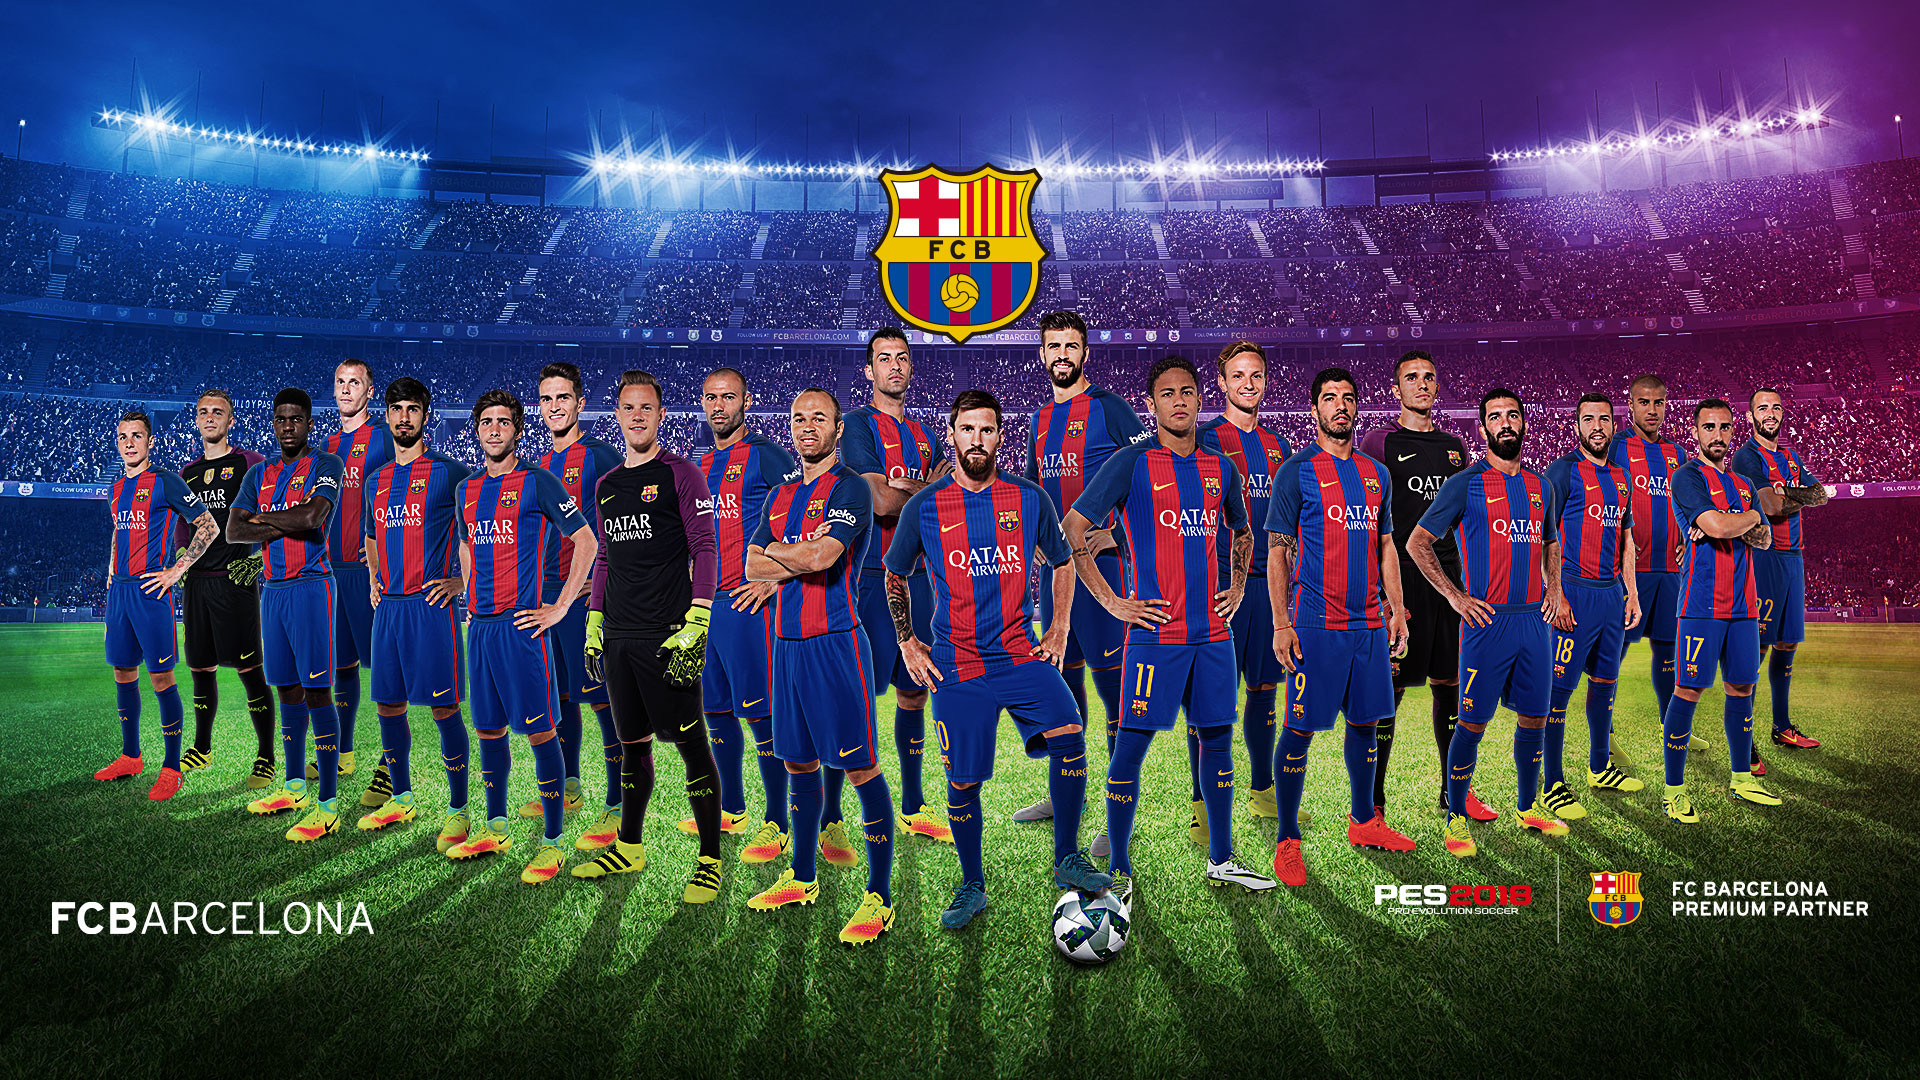 Wallpapers postage stamp fifa football world cup 2018 3840x2400 058 barcelona fc wallpaper 2018 60 images thecheapjerseys Gallery